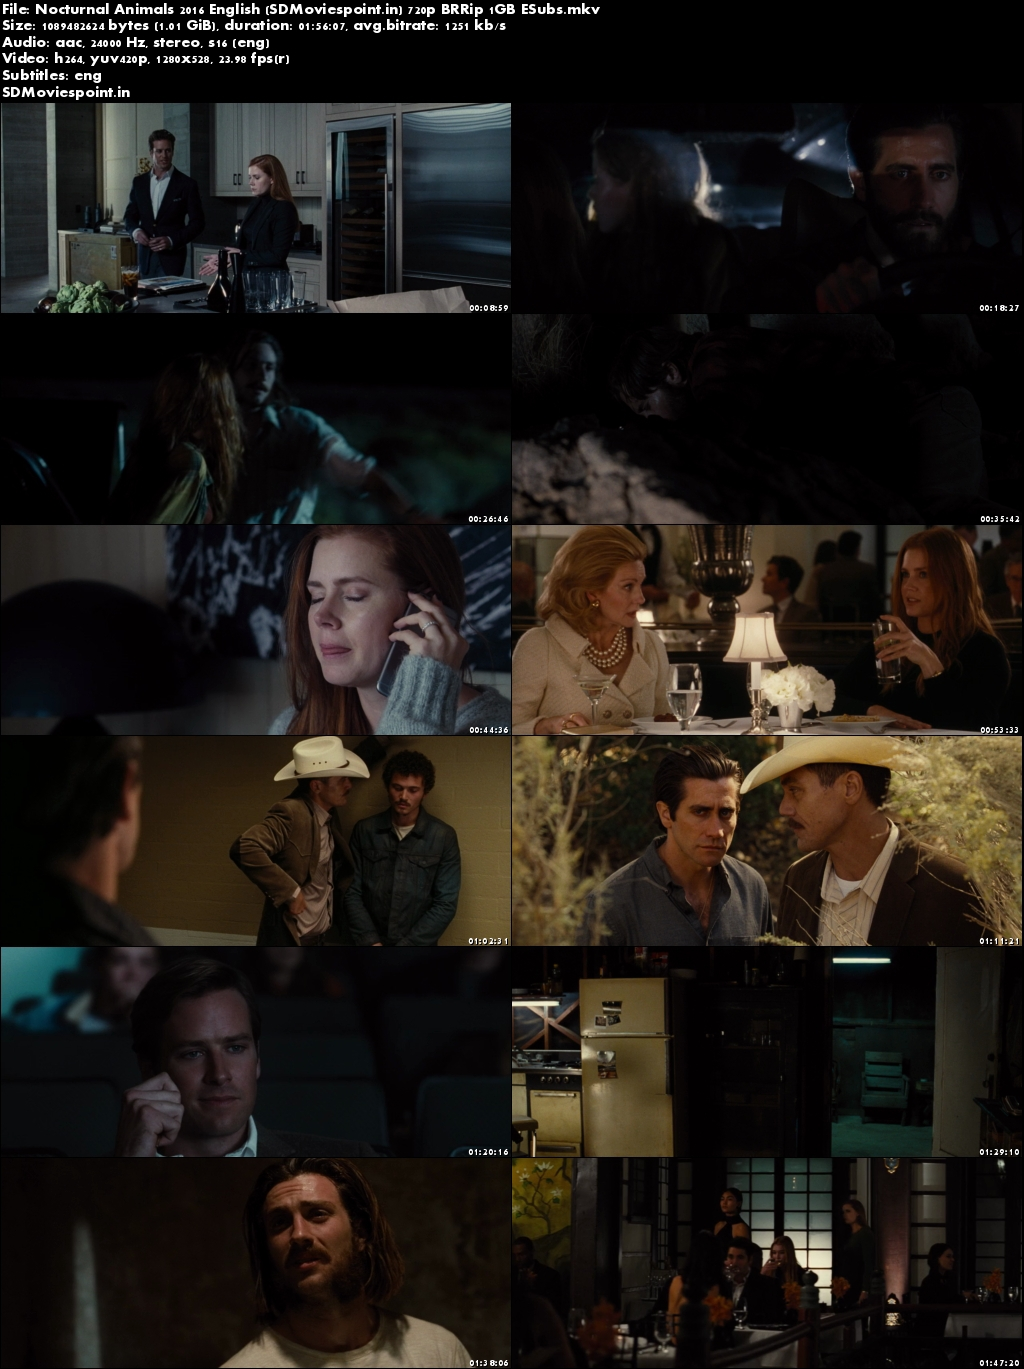 Screen Shots Nocturnal Animals (2016) Full English Movie Download 720p